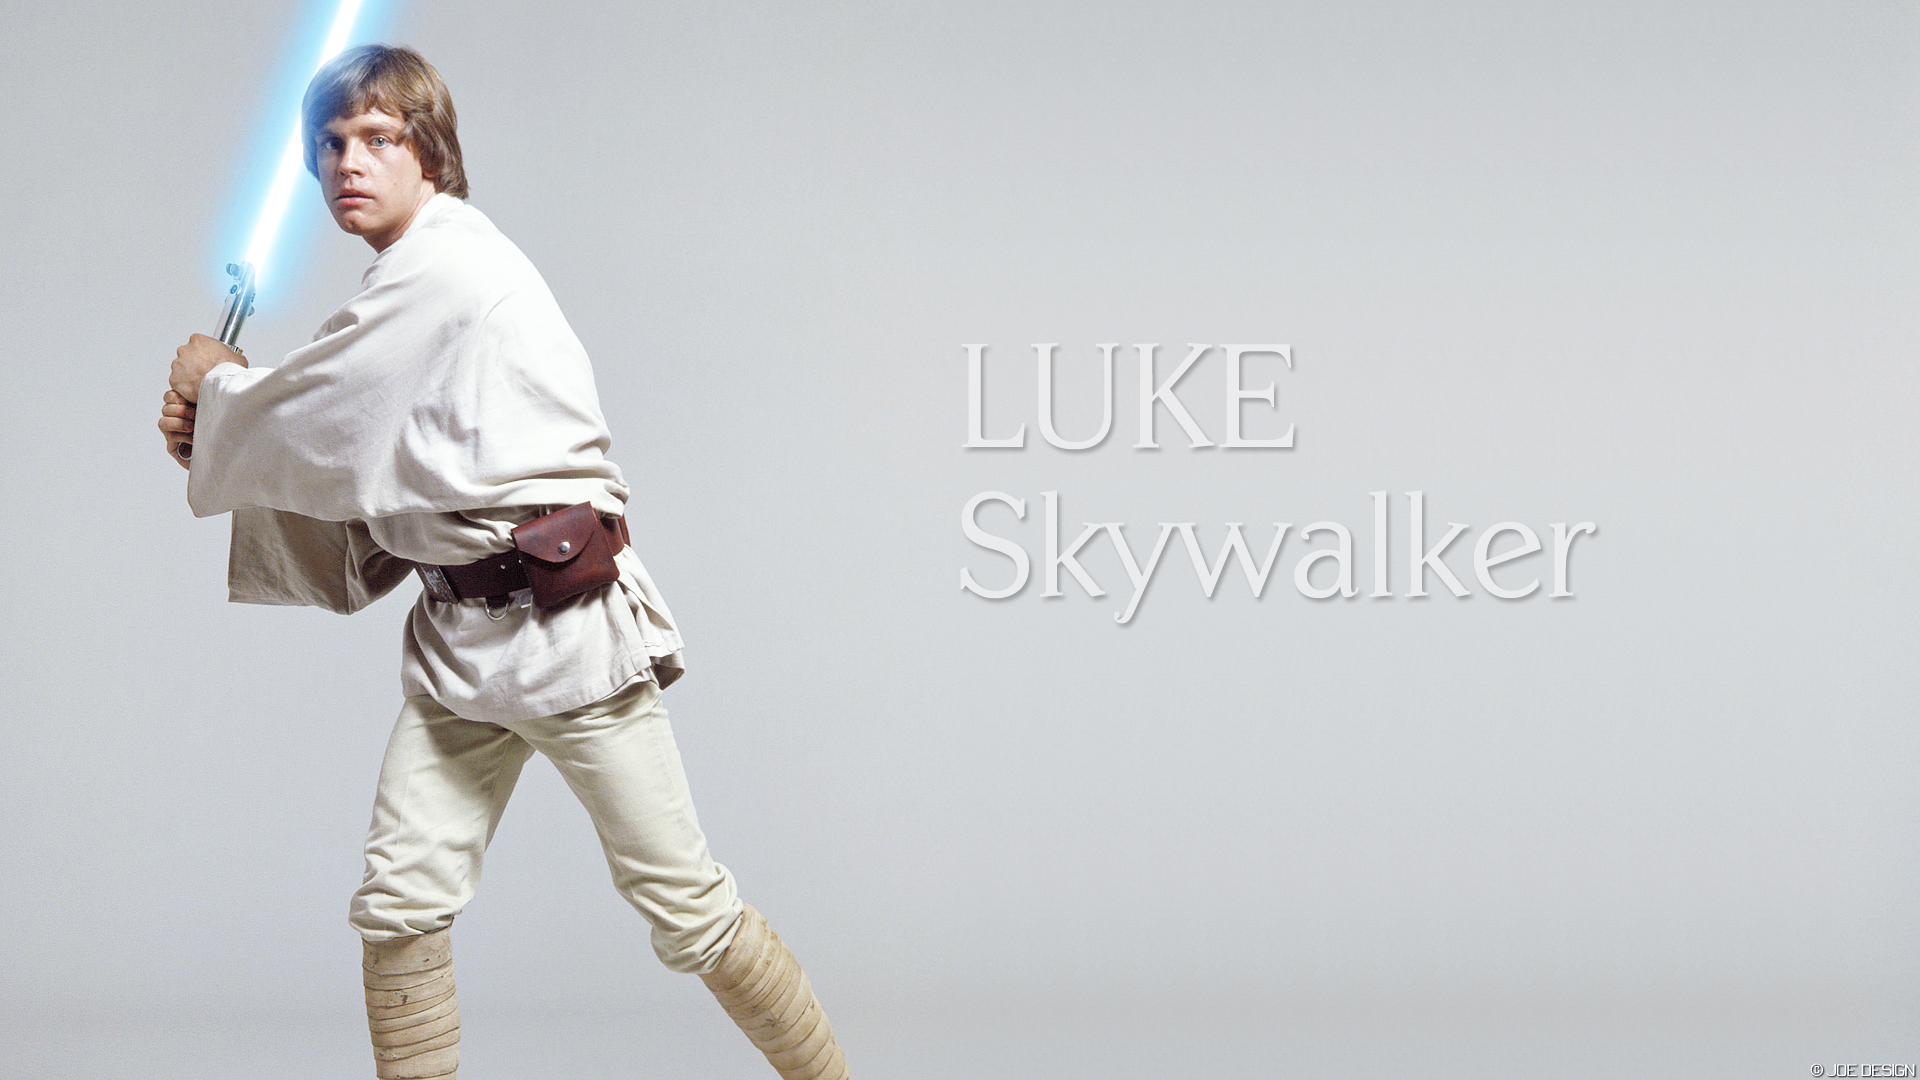 Luke-Skywalker-by-JoeDesign-on-DeviantArt-wallpaper-wp3408323